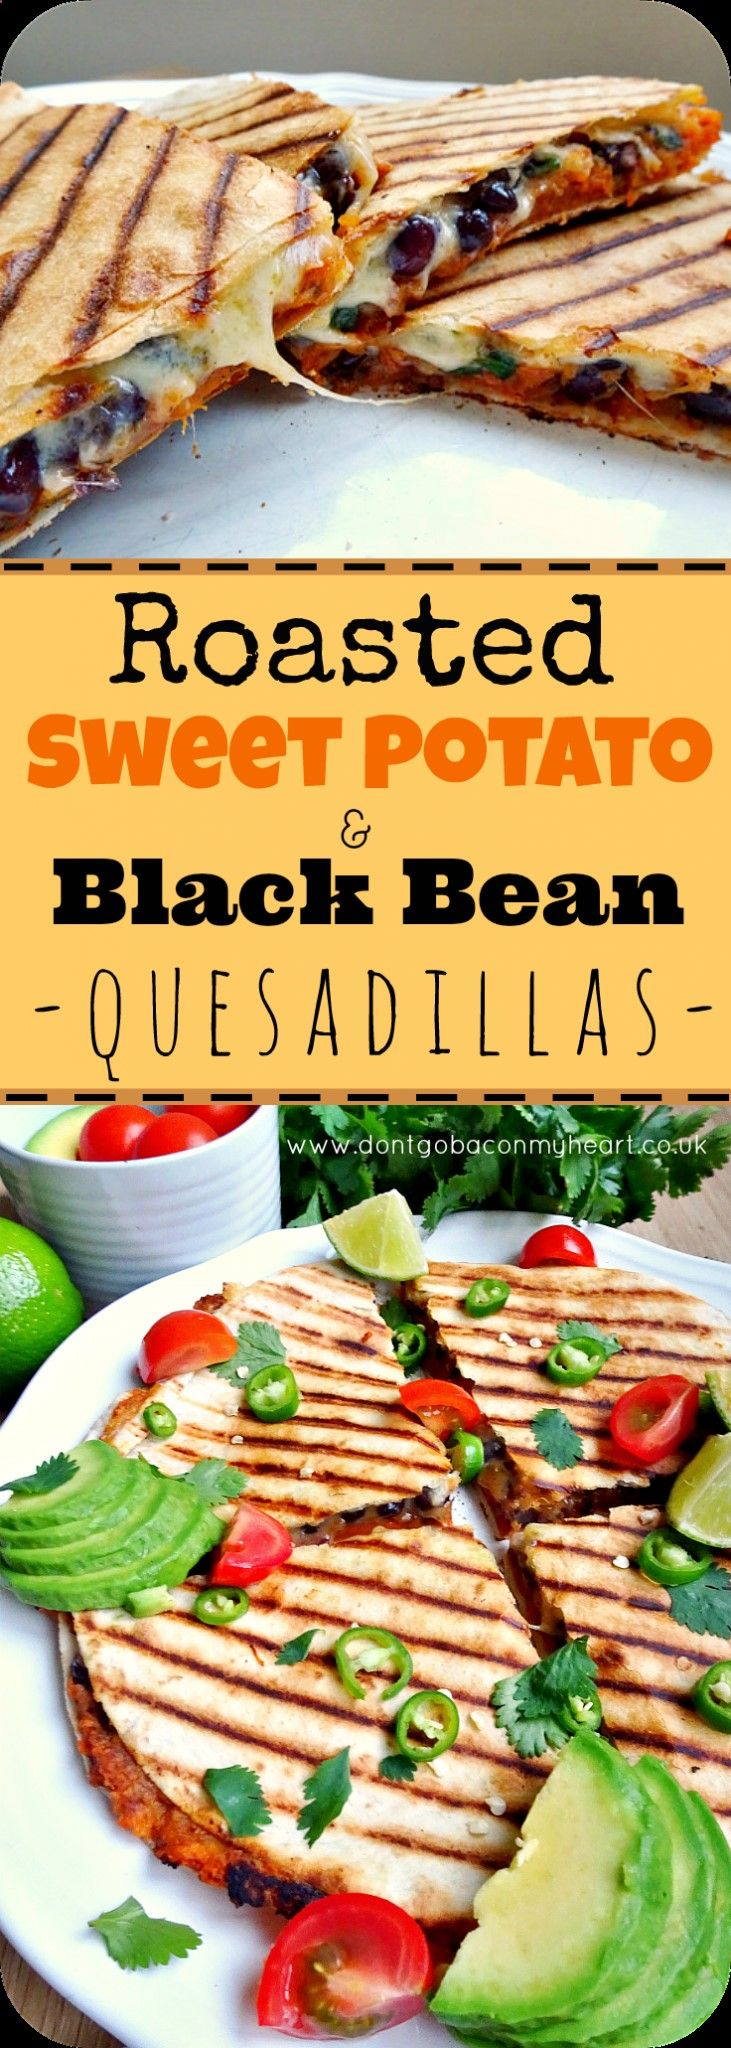 The best vegetarian Quesadillas youll ever make. So easy, super quick and most importantly really delicious and filling.